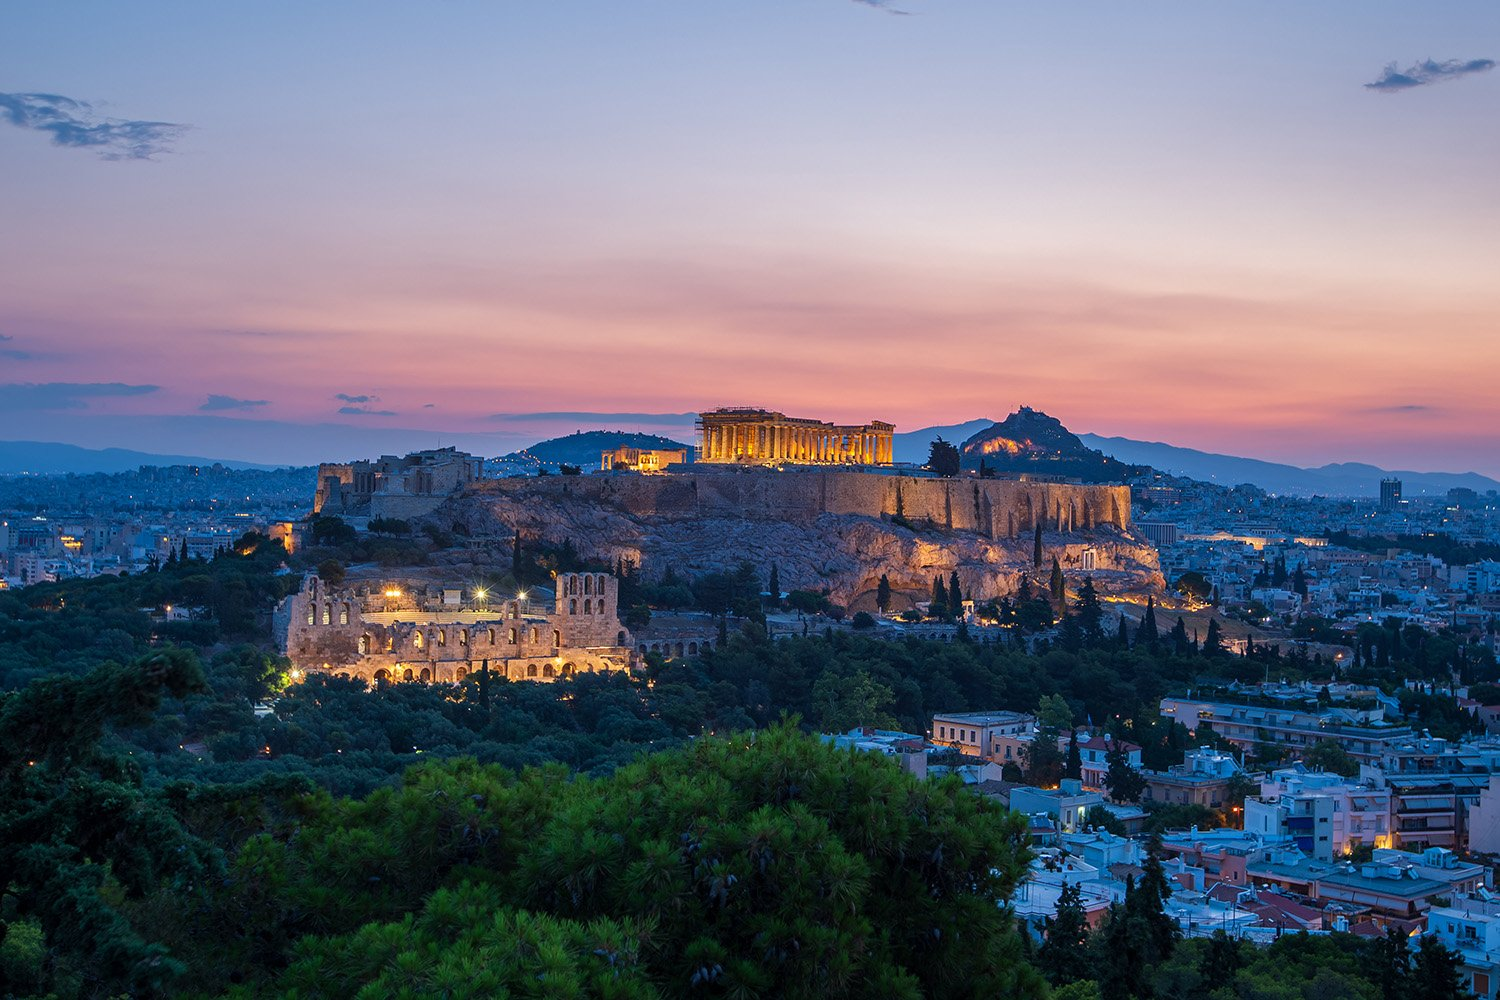 Greece Photography Workshop - Sunrise in Athens overlooking acropolis